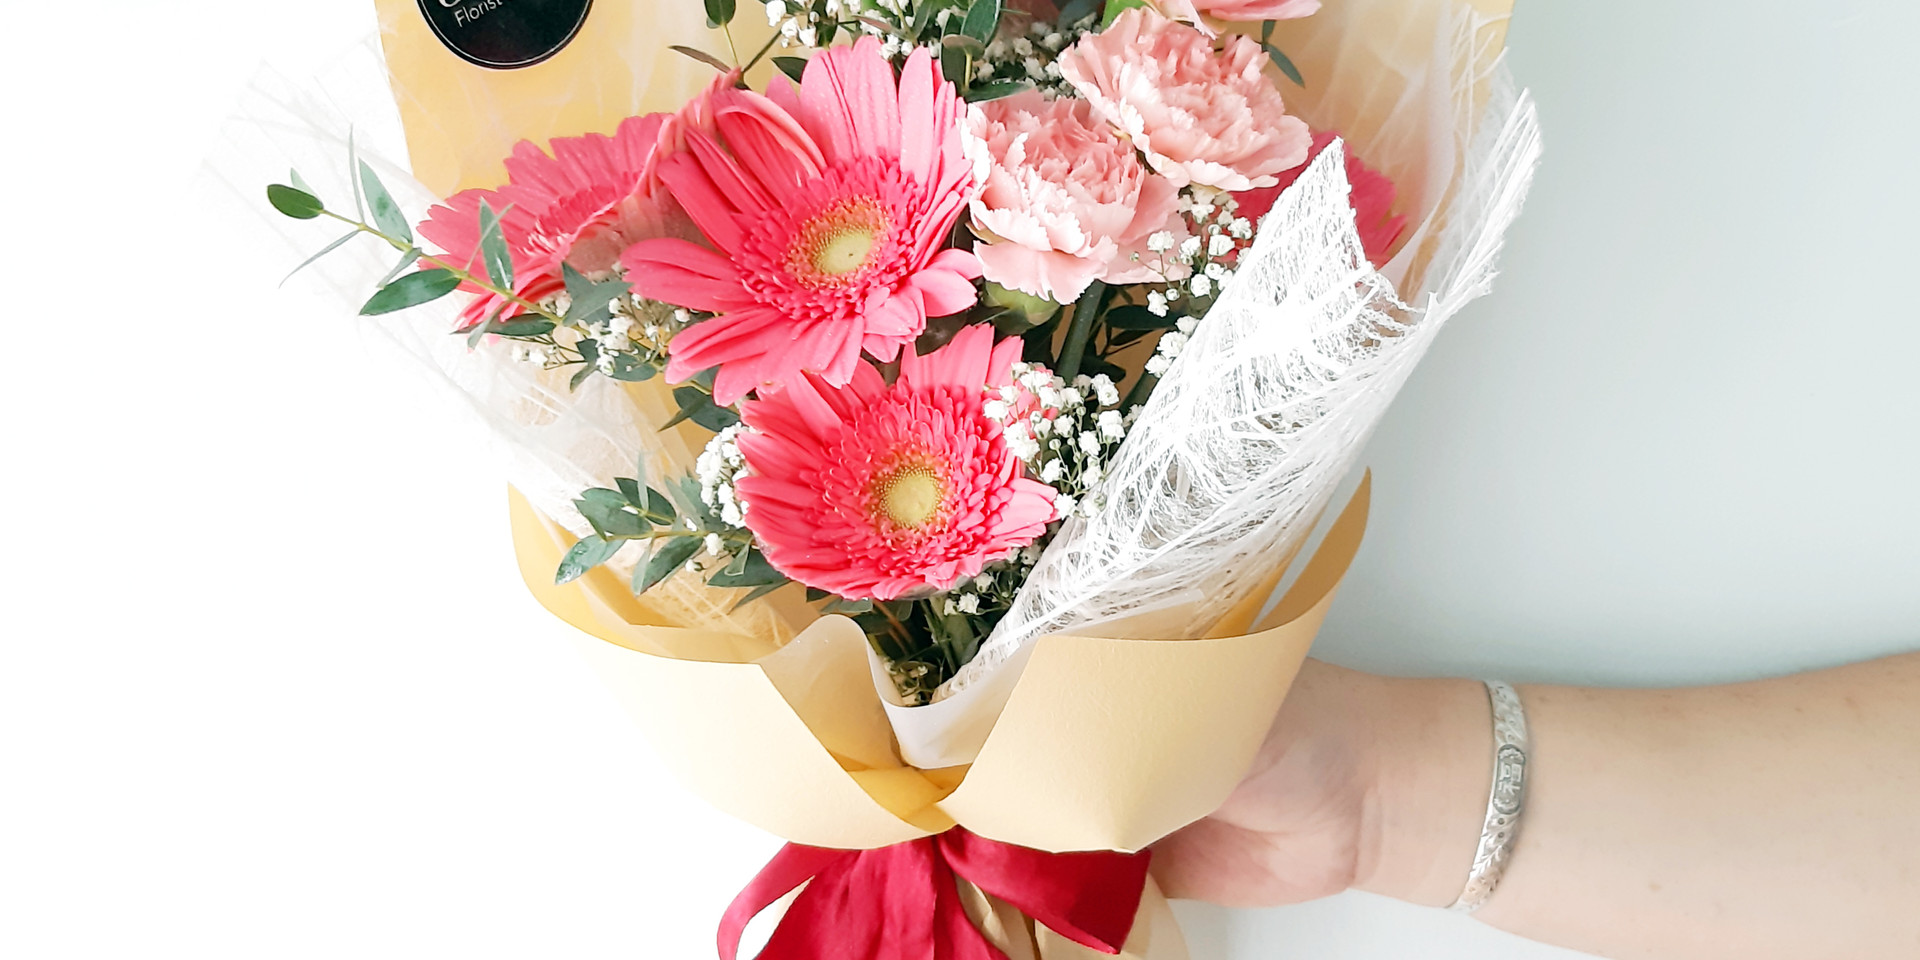 Bouquet A (small size), RM88